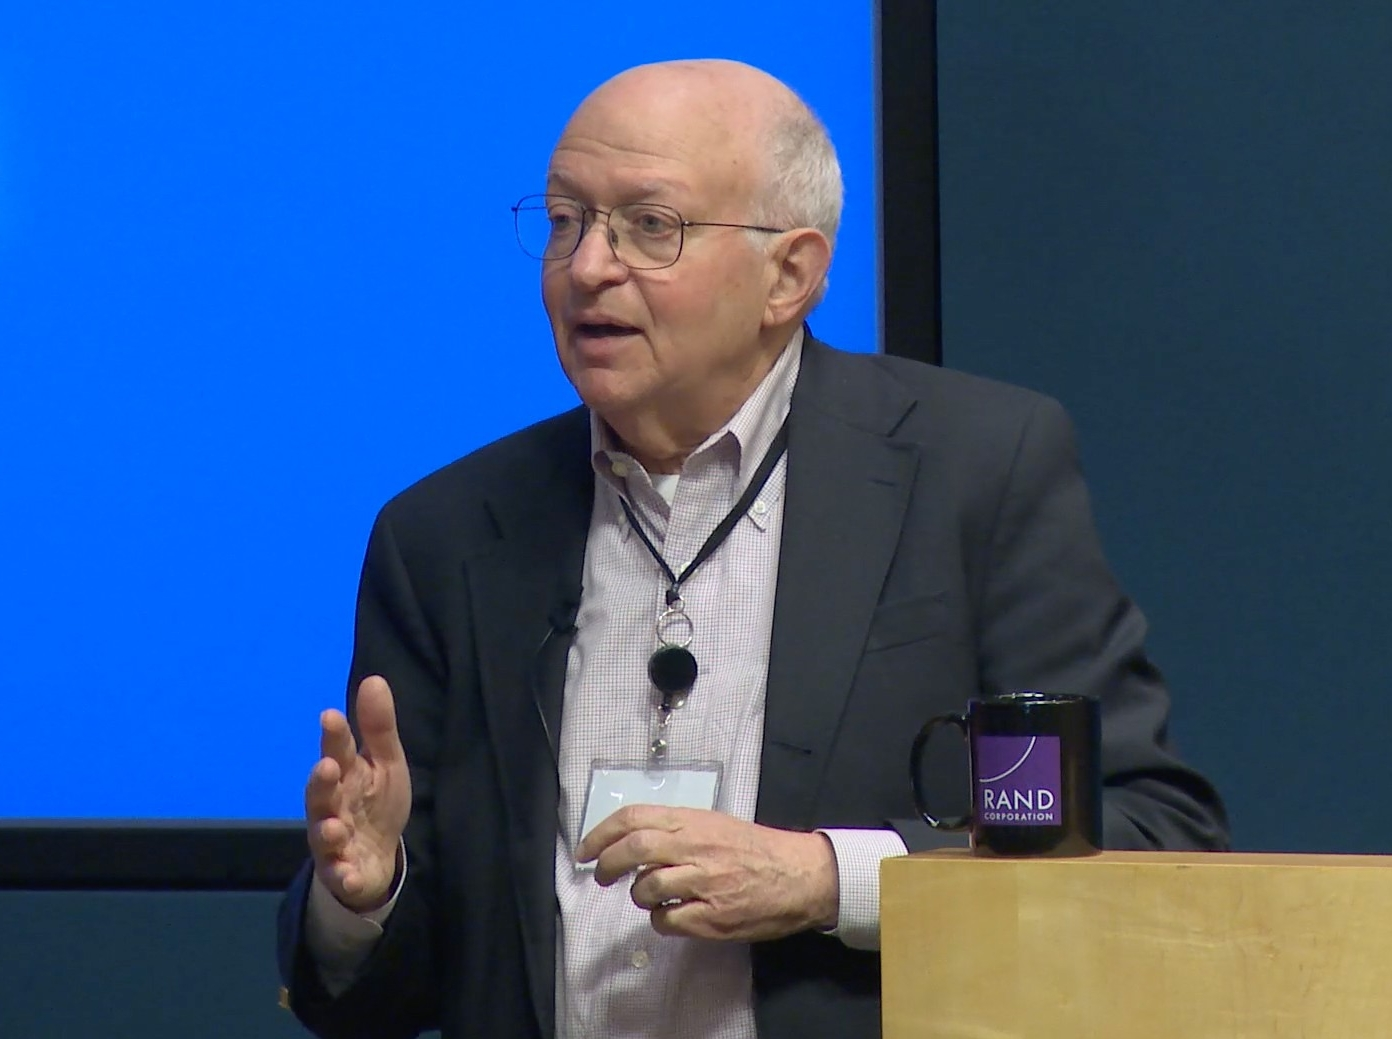 economic development rand harvard s martin feldstein on measuring real income growth and income distribution